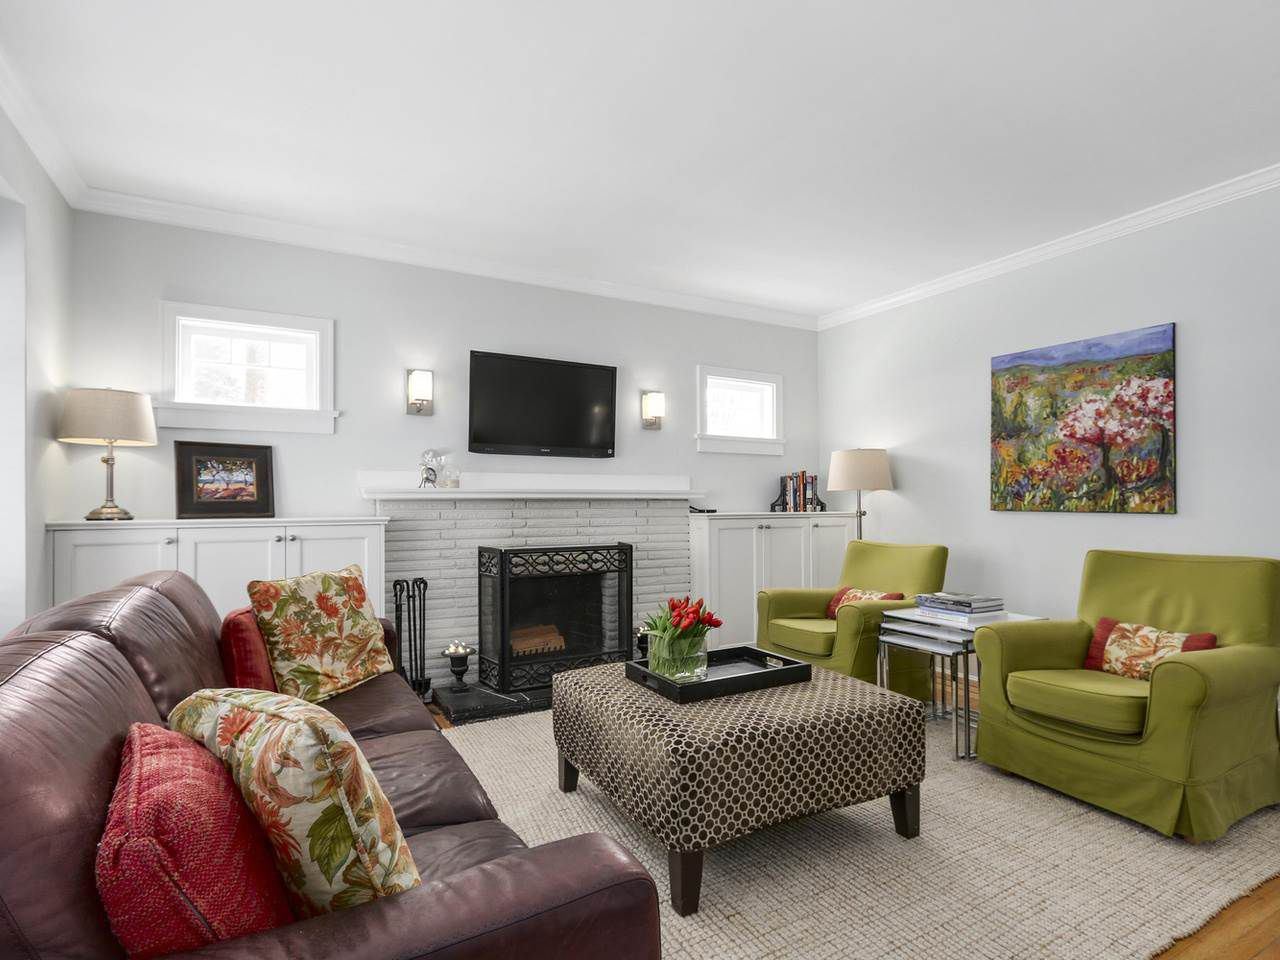 """Main Photo: 3626 W 37TH Avenue in Vancouver: Dunbar House for sale in """"DUNBAR"""" (Vancouver West)  : MLS®# R2138202"""